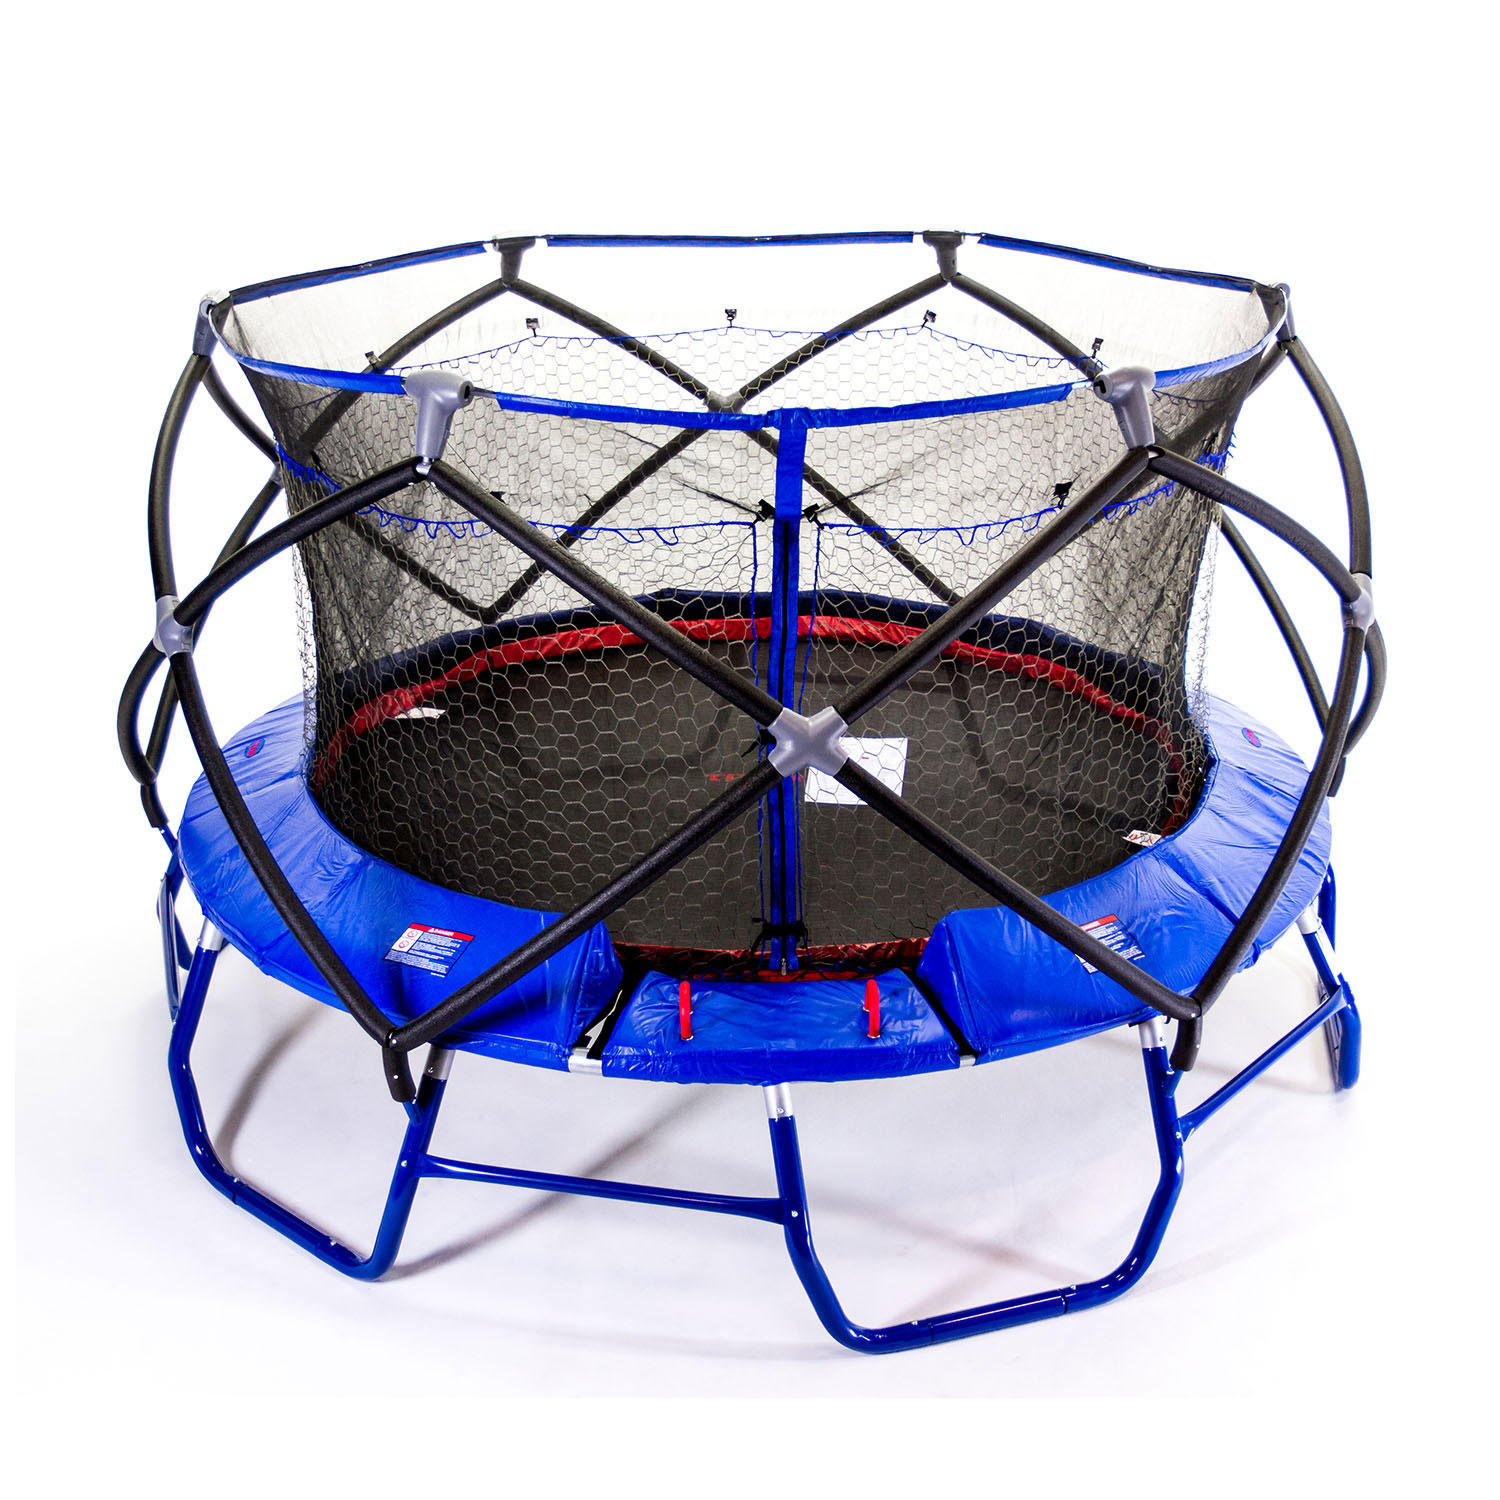 Monxter XT8 15-Foot Round Trampoline with Patent 2-Net Enclosure Combo